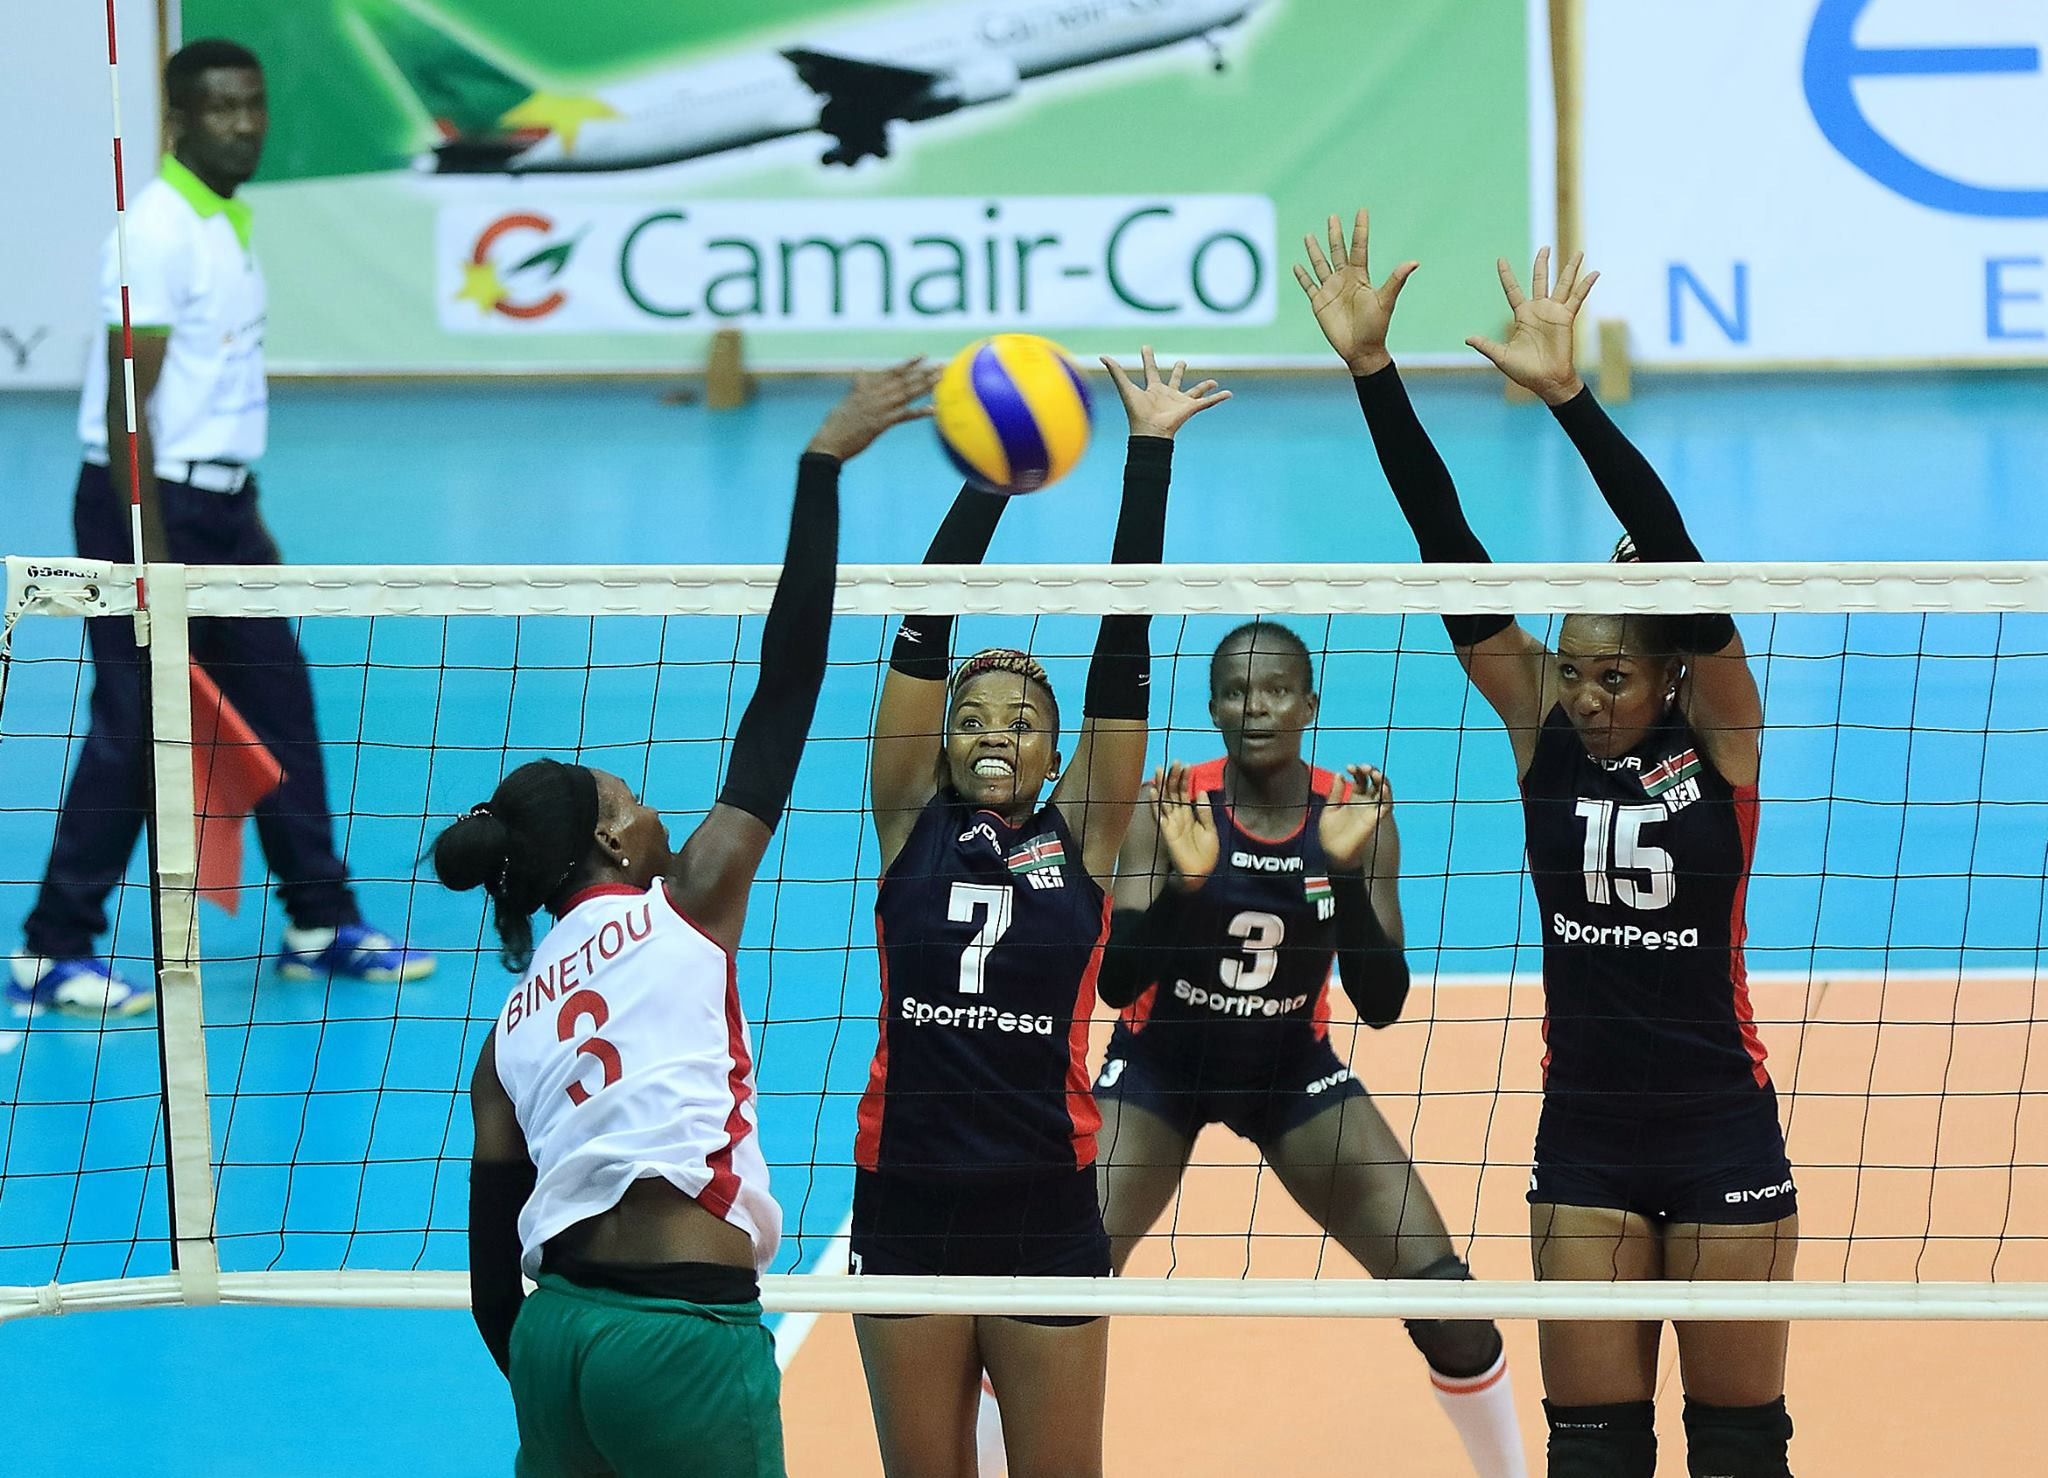 Holders record second consecutive straight sets win at African Women's Volleyball Championship